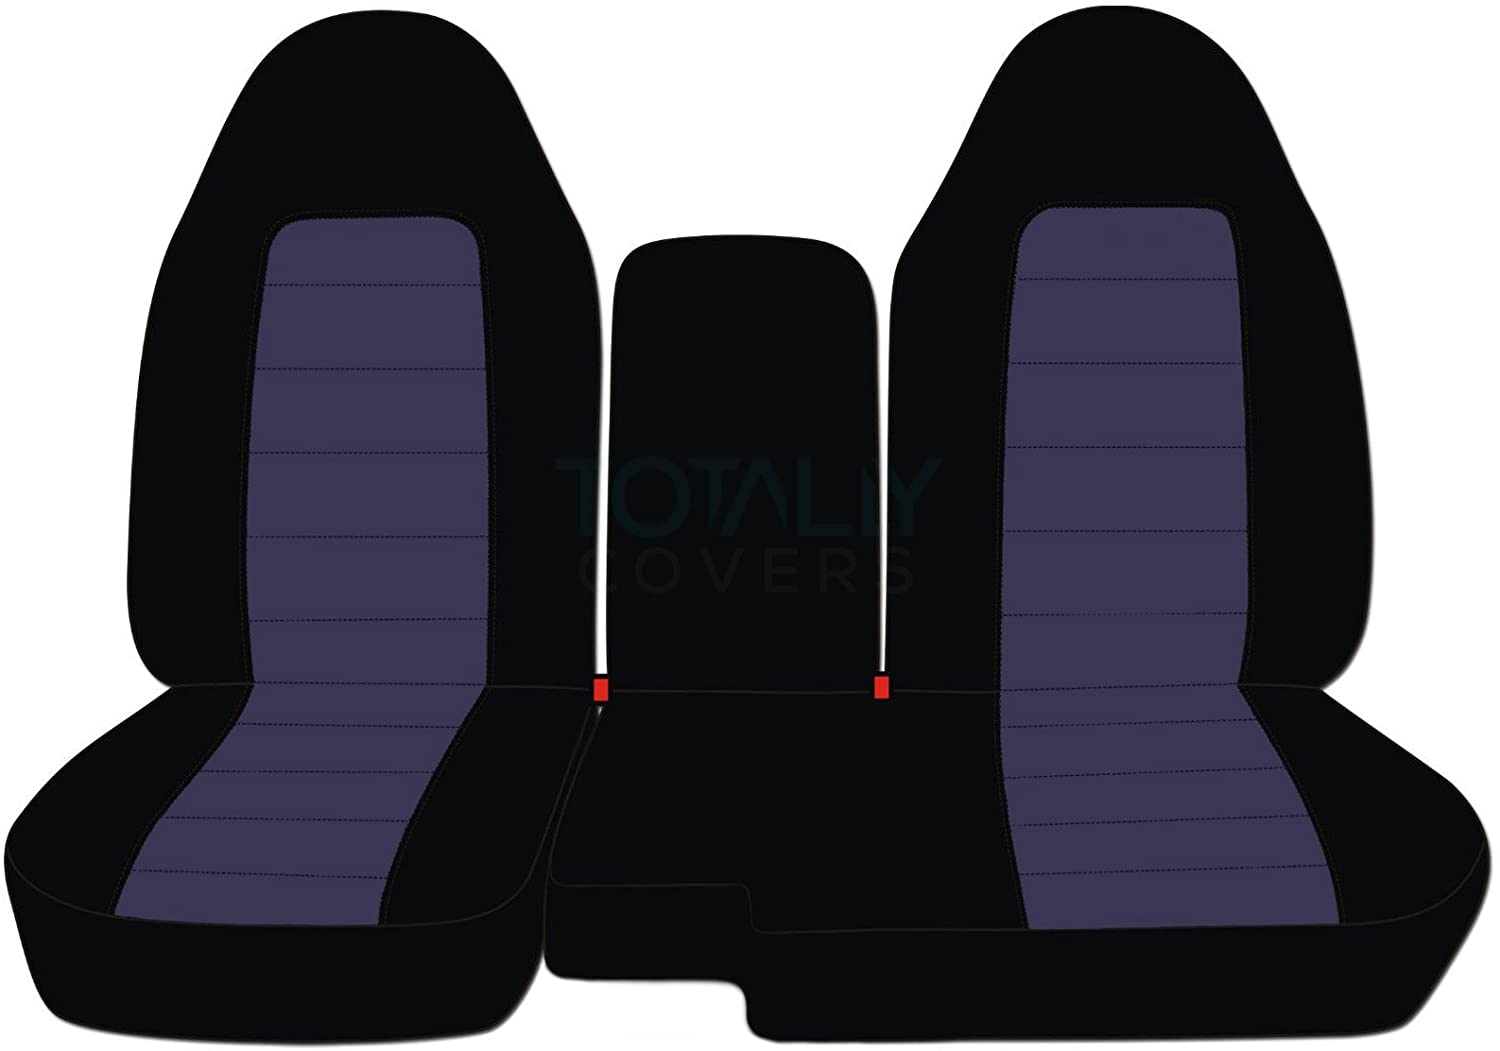 w Center Console//Armrest Cover: Black /& Blue Gray 60//40 Split Bench Totally Covers Fits 2004-2012 Ford Ranger//Mazda B-Series Two-Tone Truck Seat Covers 21 Colors 2005 2006 2007 2008 2009 2010 2011